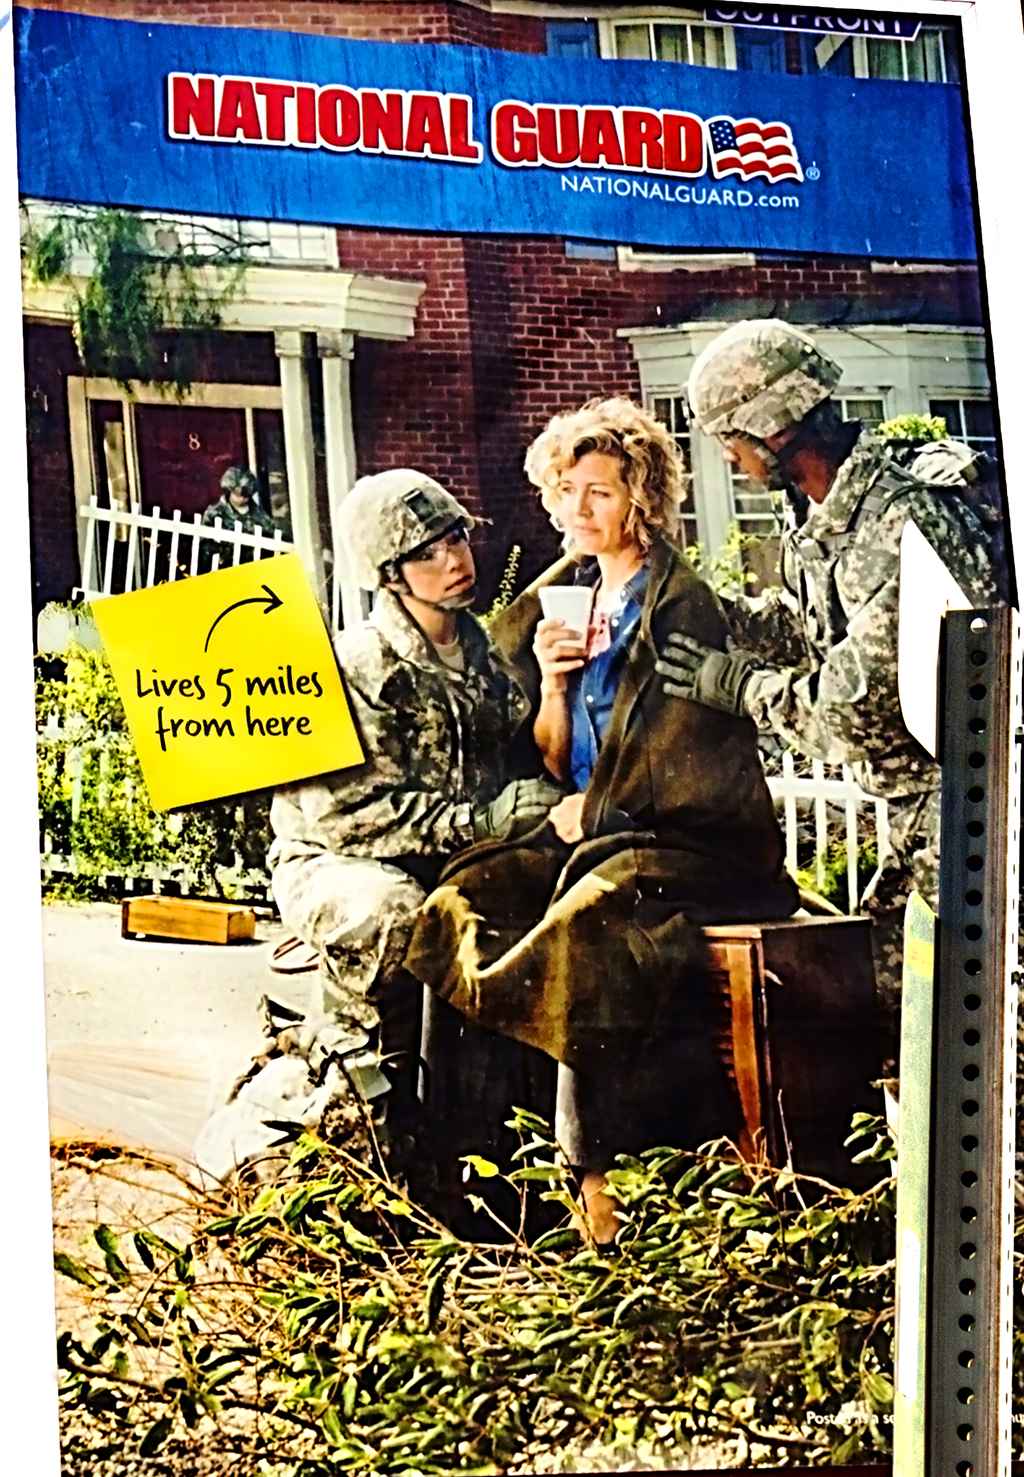 NATIONAL-GUARD-recruiting-billboard-on-3-22-15--South-Philadelphia-2-(detail)